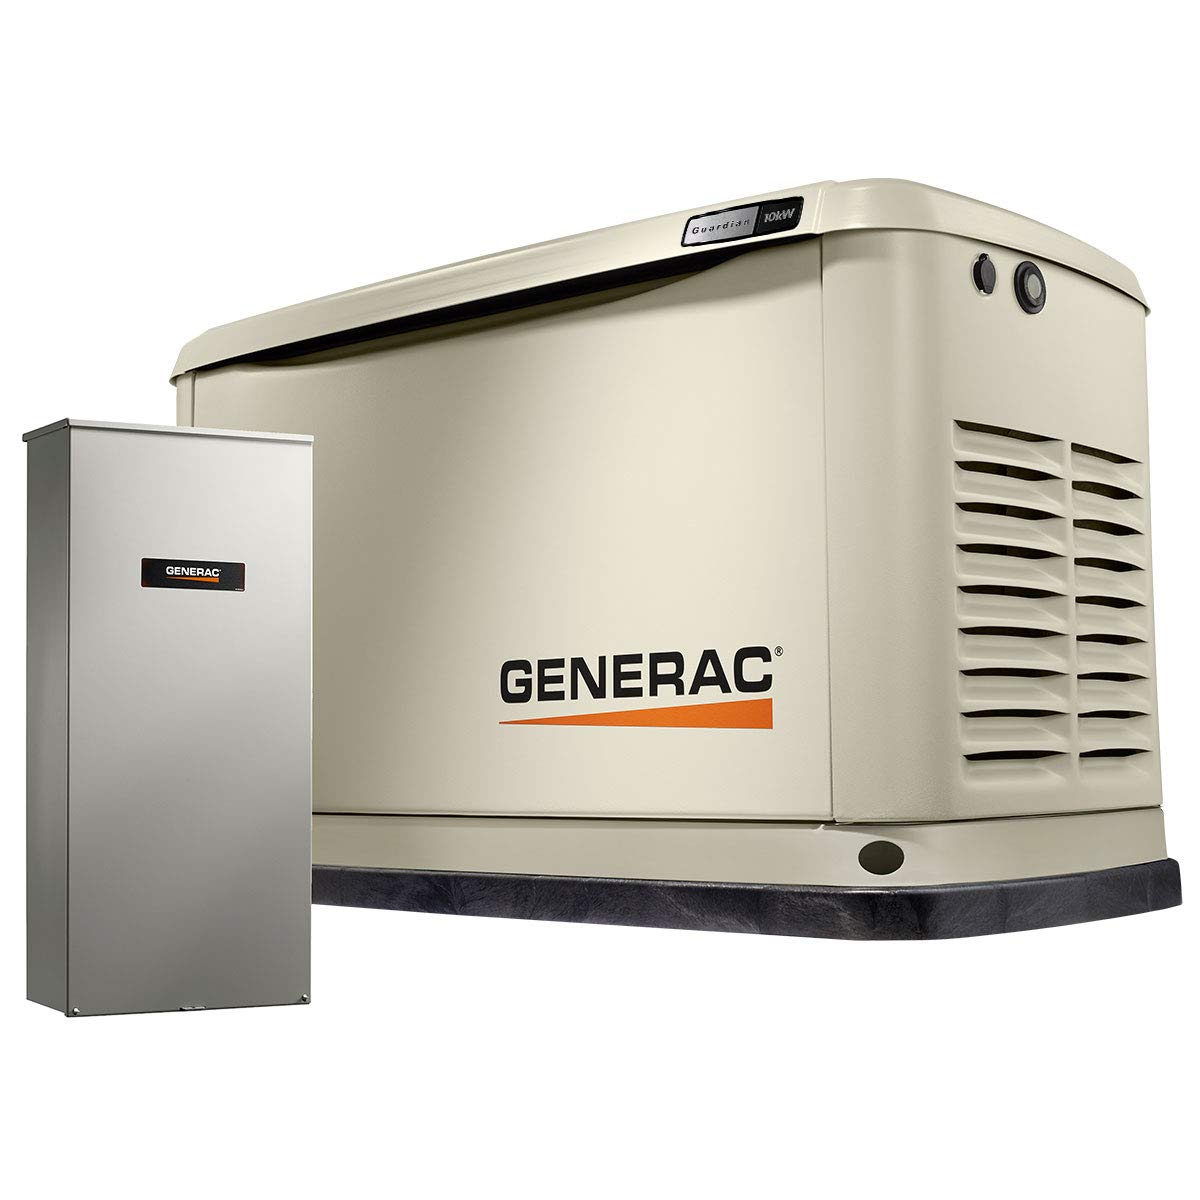 Generac 7172 Guardian 10kW Home Backup Generator with 16-Circuit Transfer Switch WiFi-Enabled by Generac